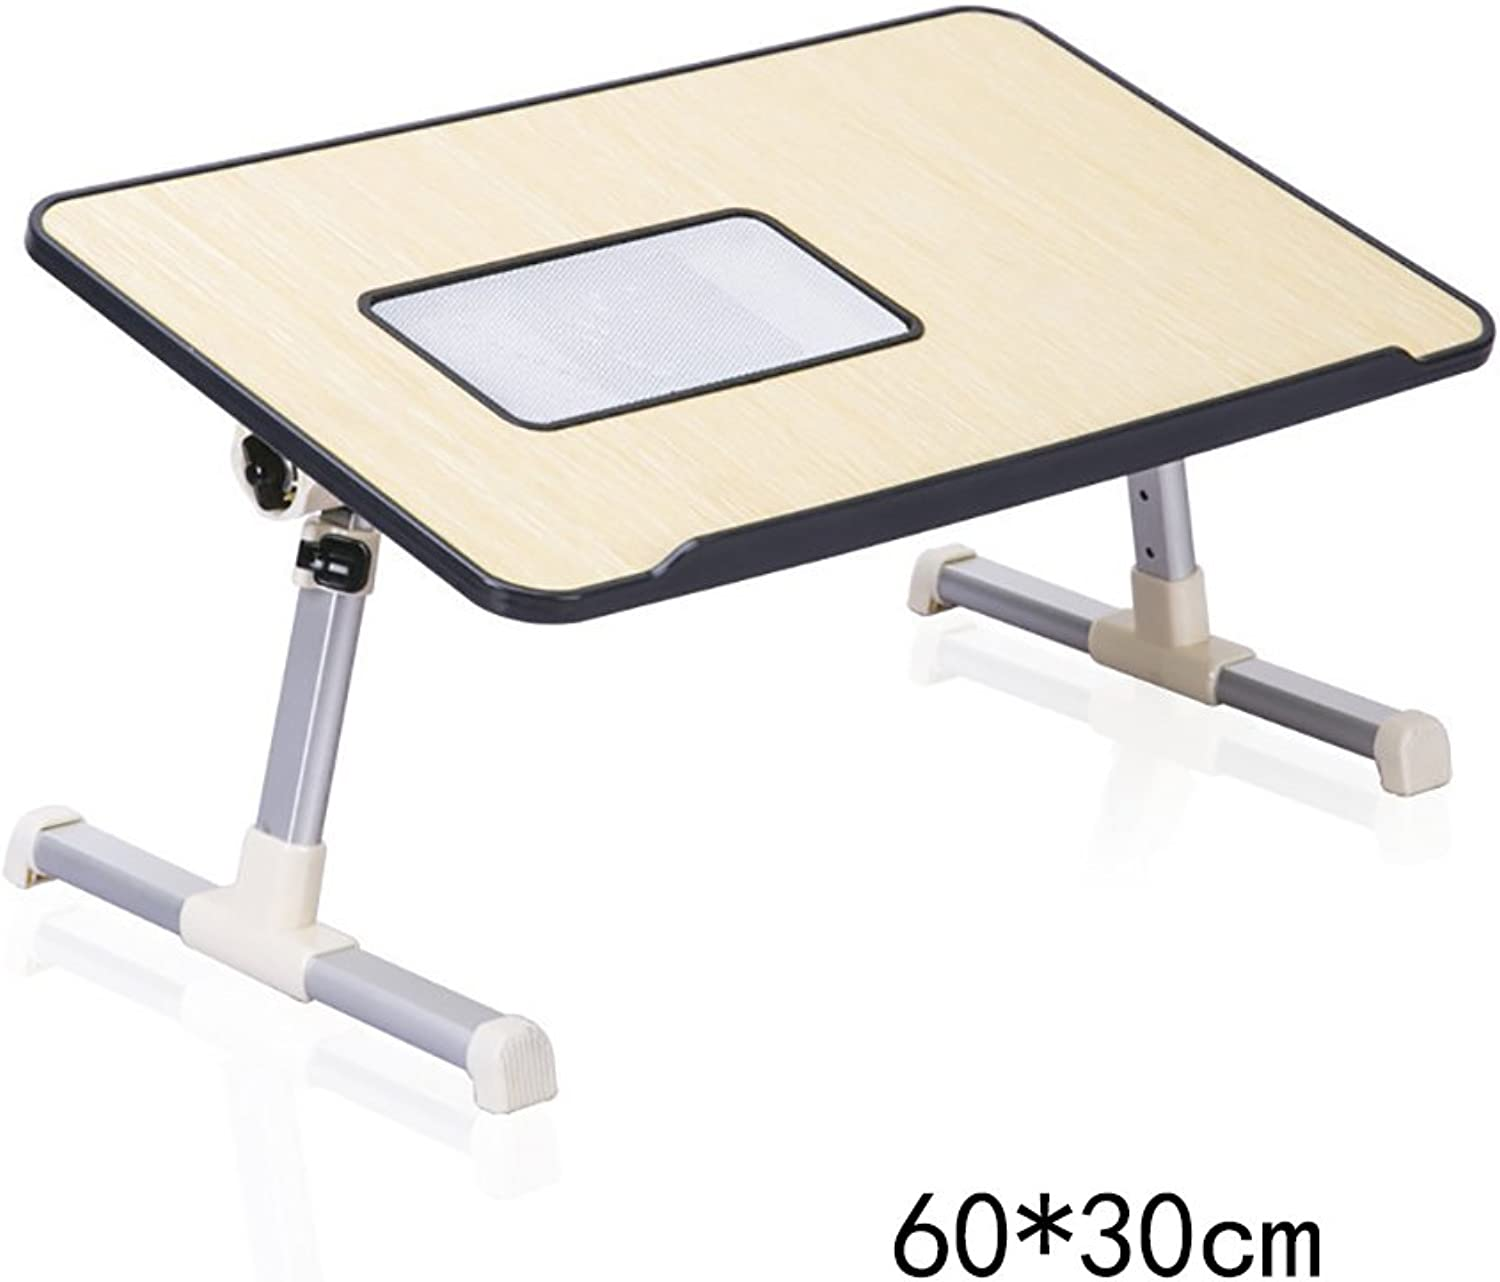 HAIPENG Laptop Tables Dormitory Learning Desk Household Folding Tables with Radiator (2 colors, 2 Styles Optional) (color   Black, Style   A)